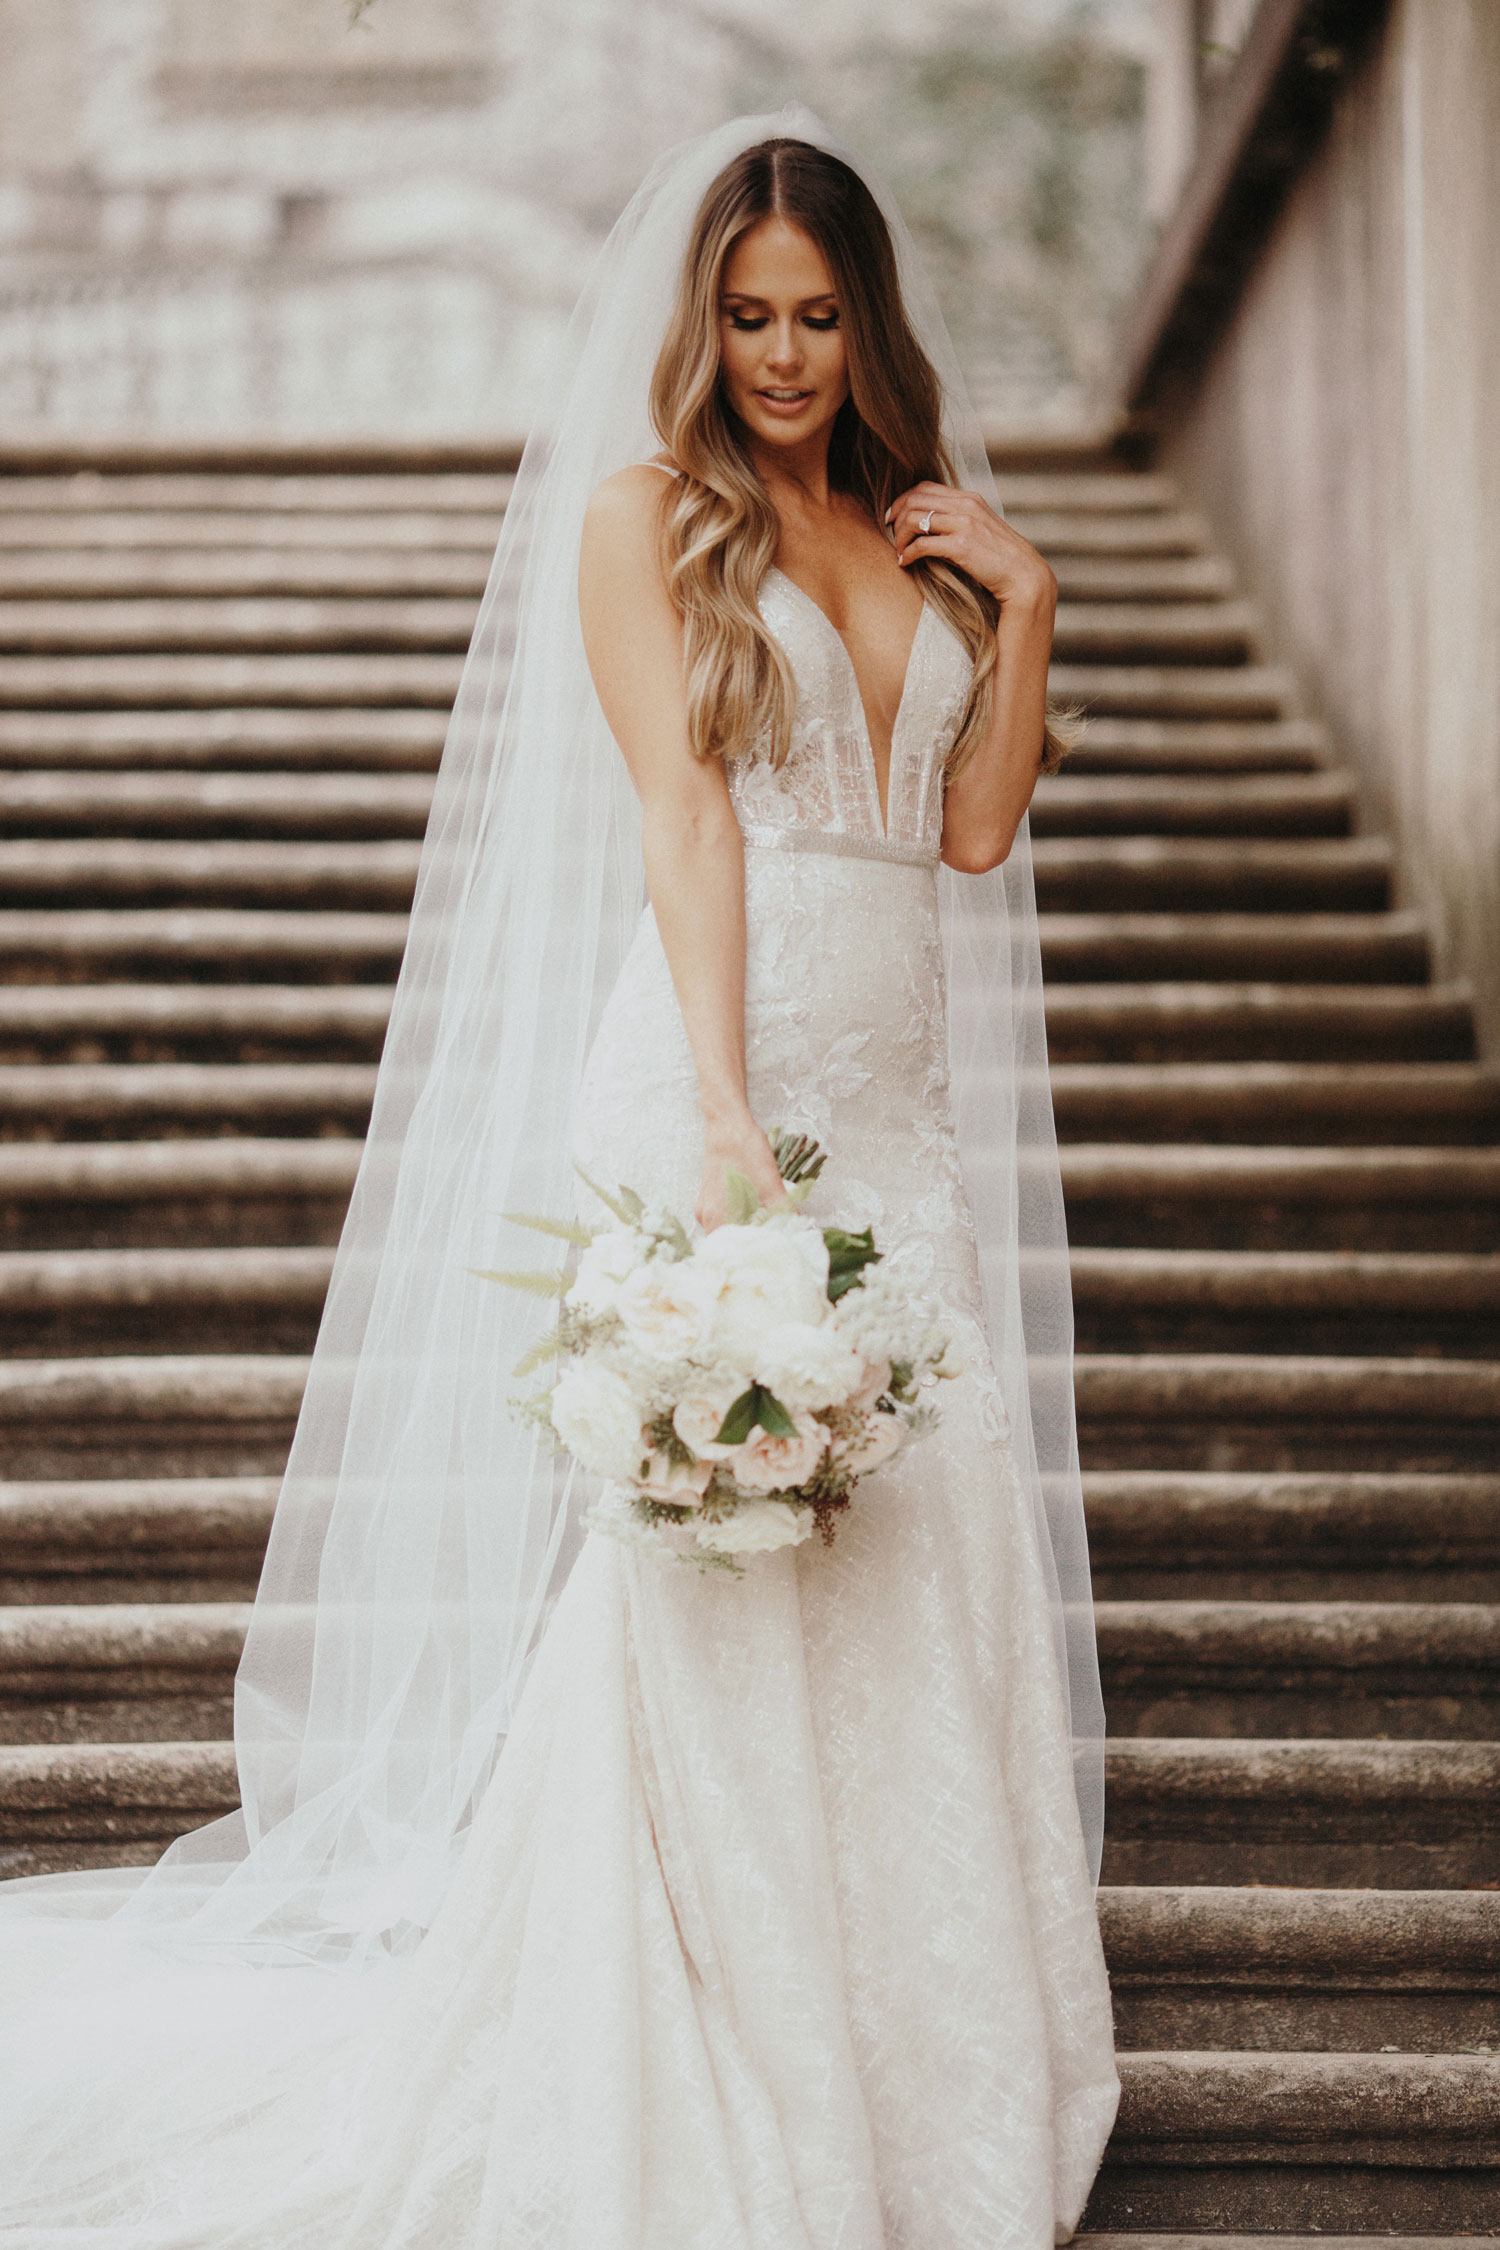 PRetty bride in low cut wedding dress cathedral veil bouquet